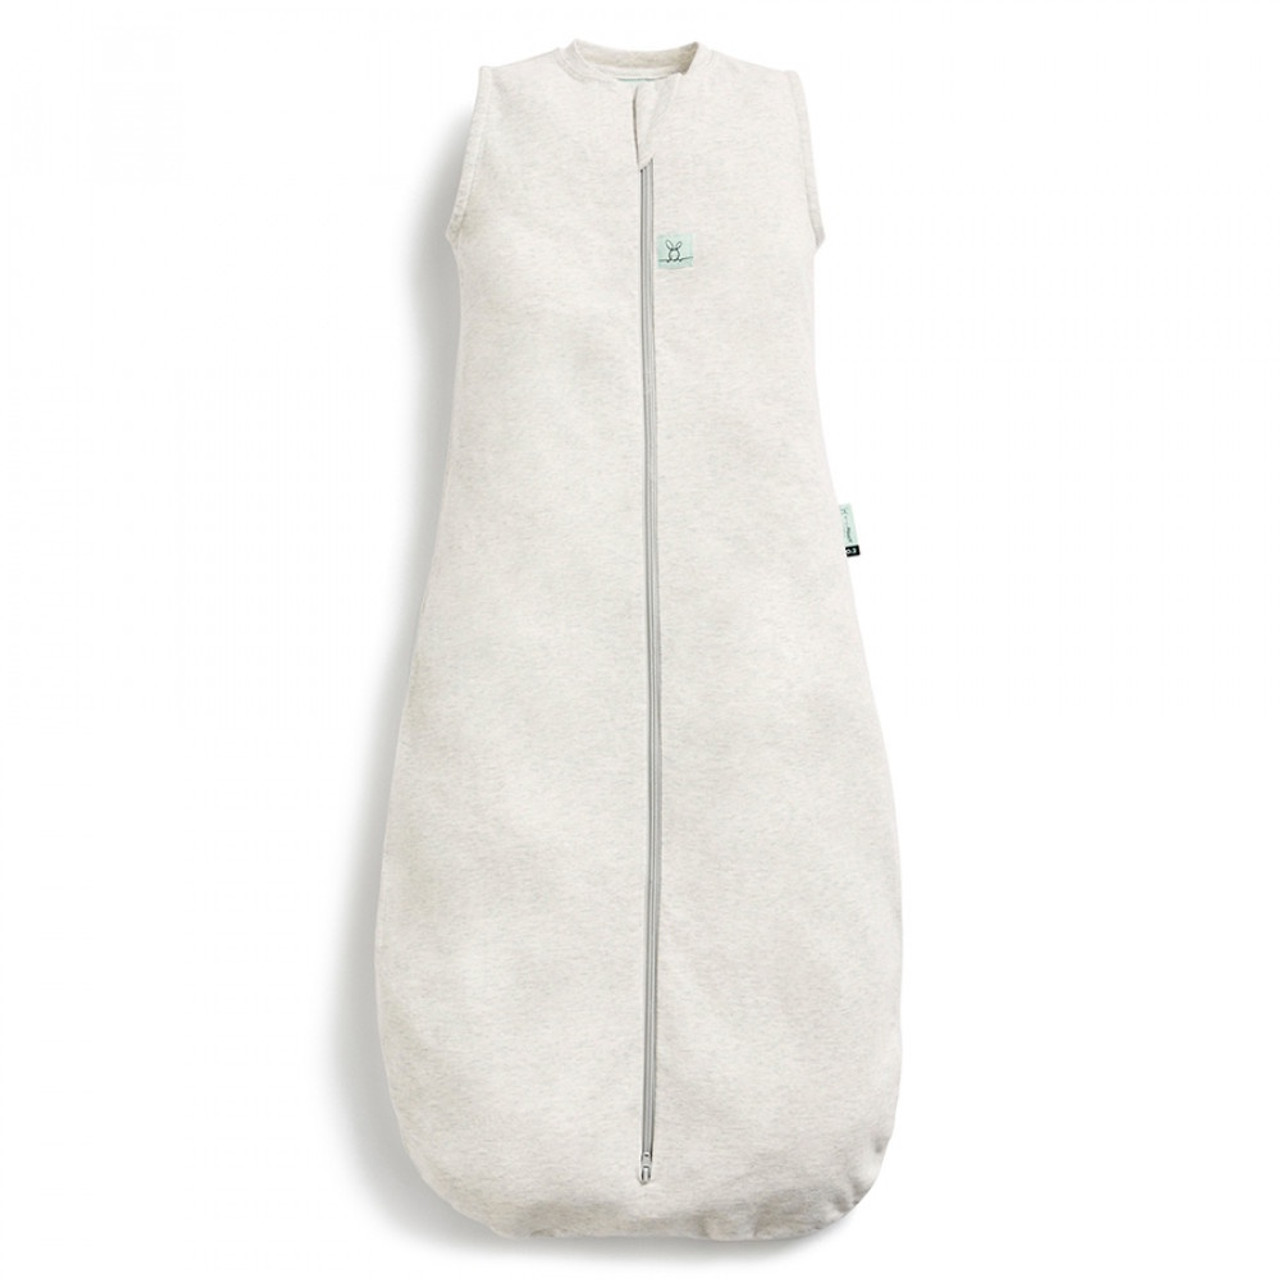 ergoPouch Jersey Sleeping Bag 0.2 TOG Grey Marle 8-24 months at Baby Barn Discounts Ergopouch lightweight 0.2 TOG Jersey Sleeping Bag perfect for humid summer.